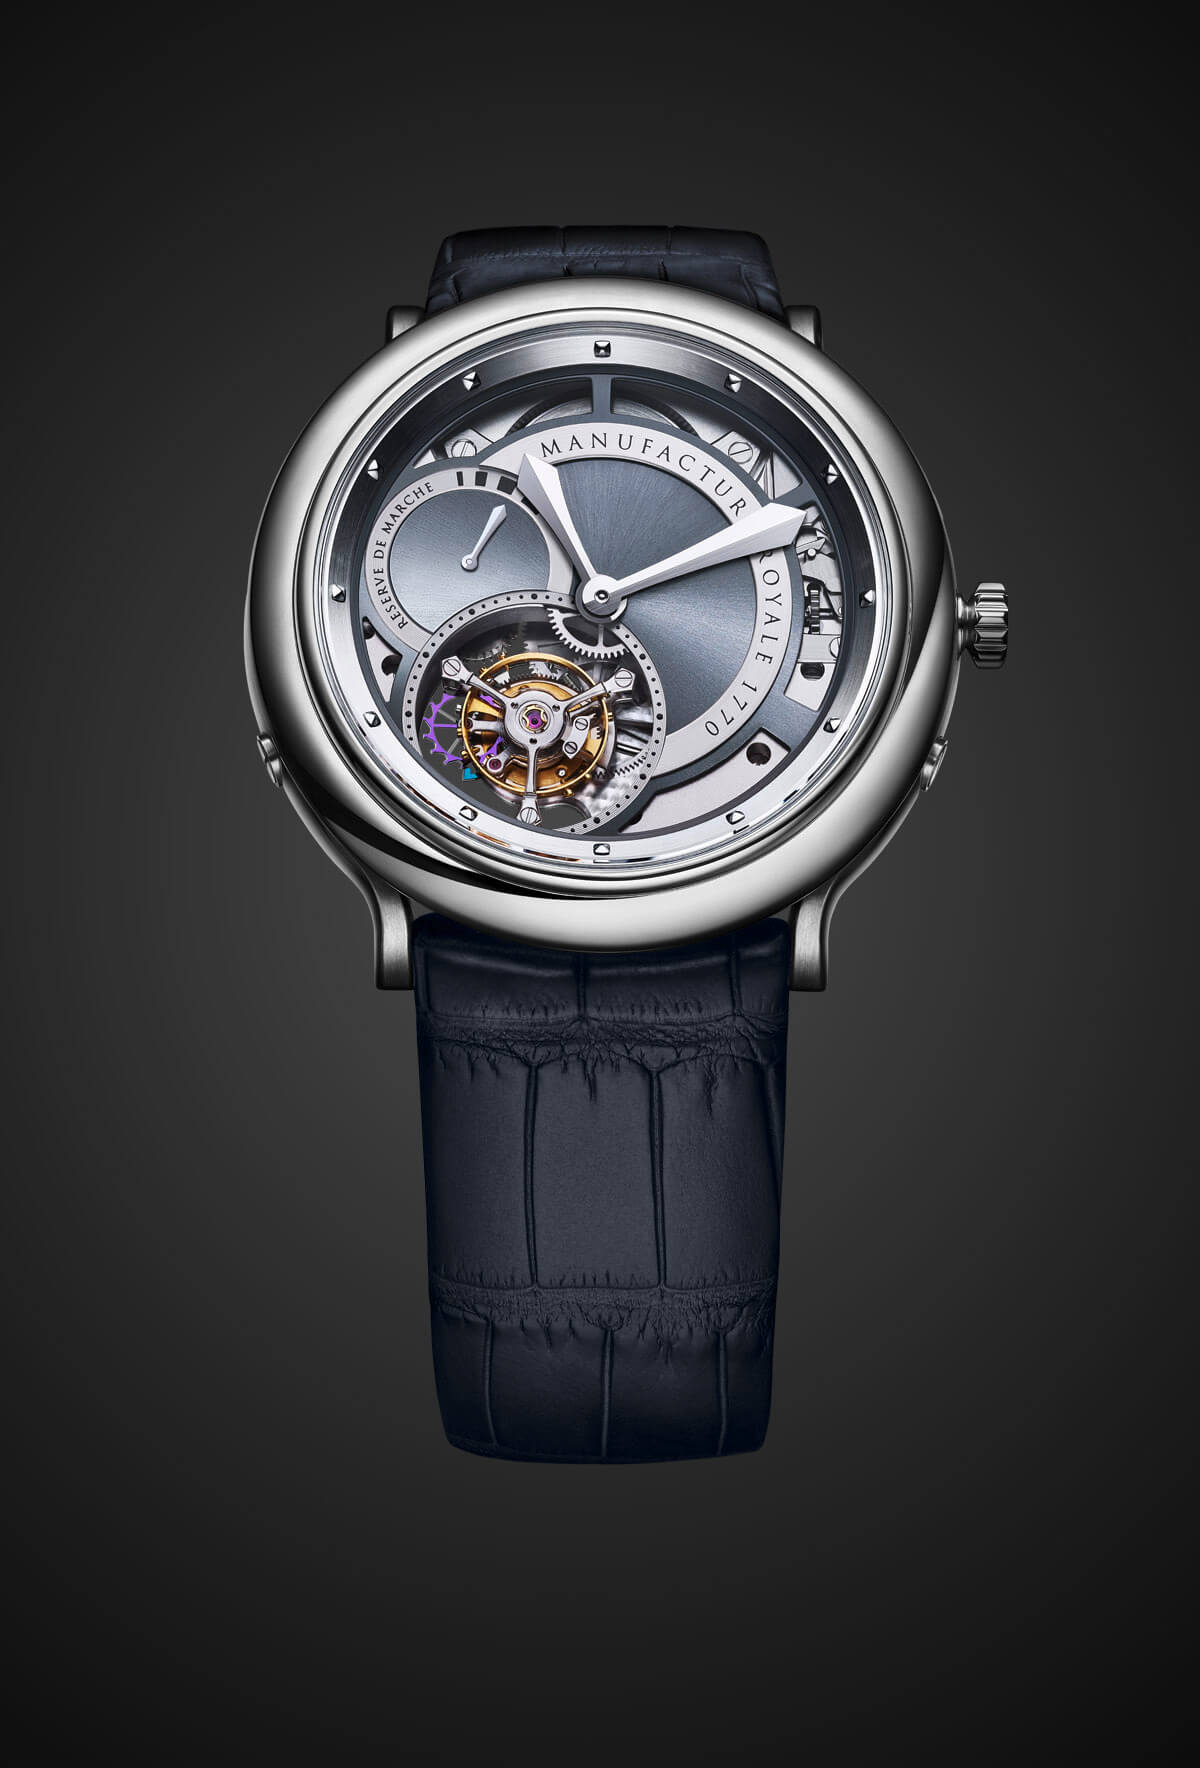 Image of Manufacture Royale 1770 Flying Tourbillon